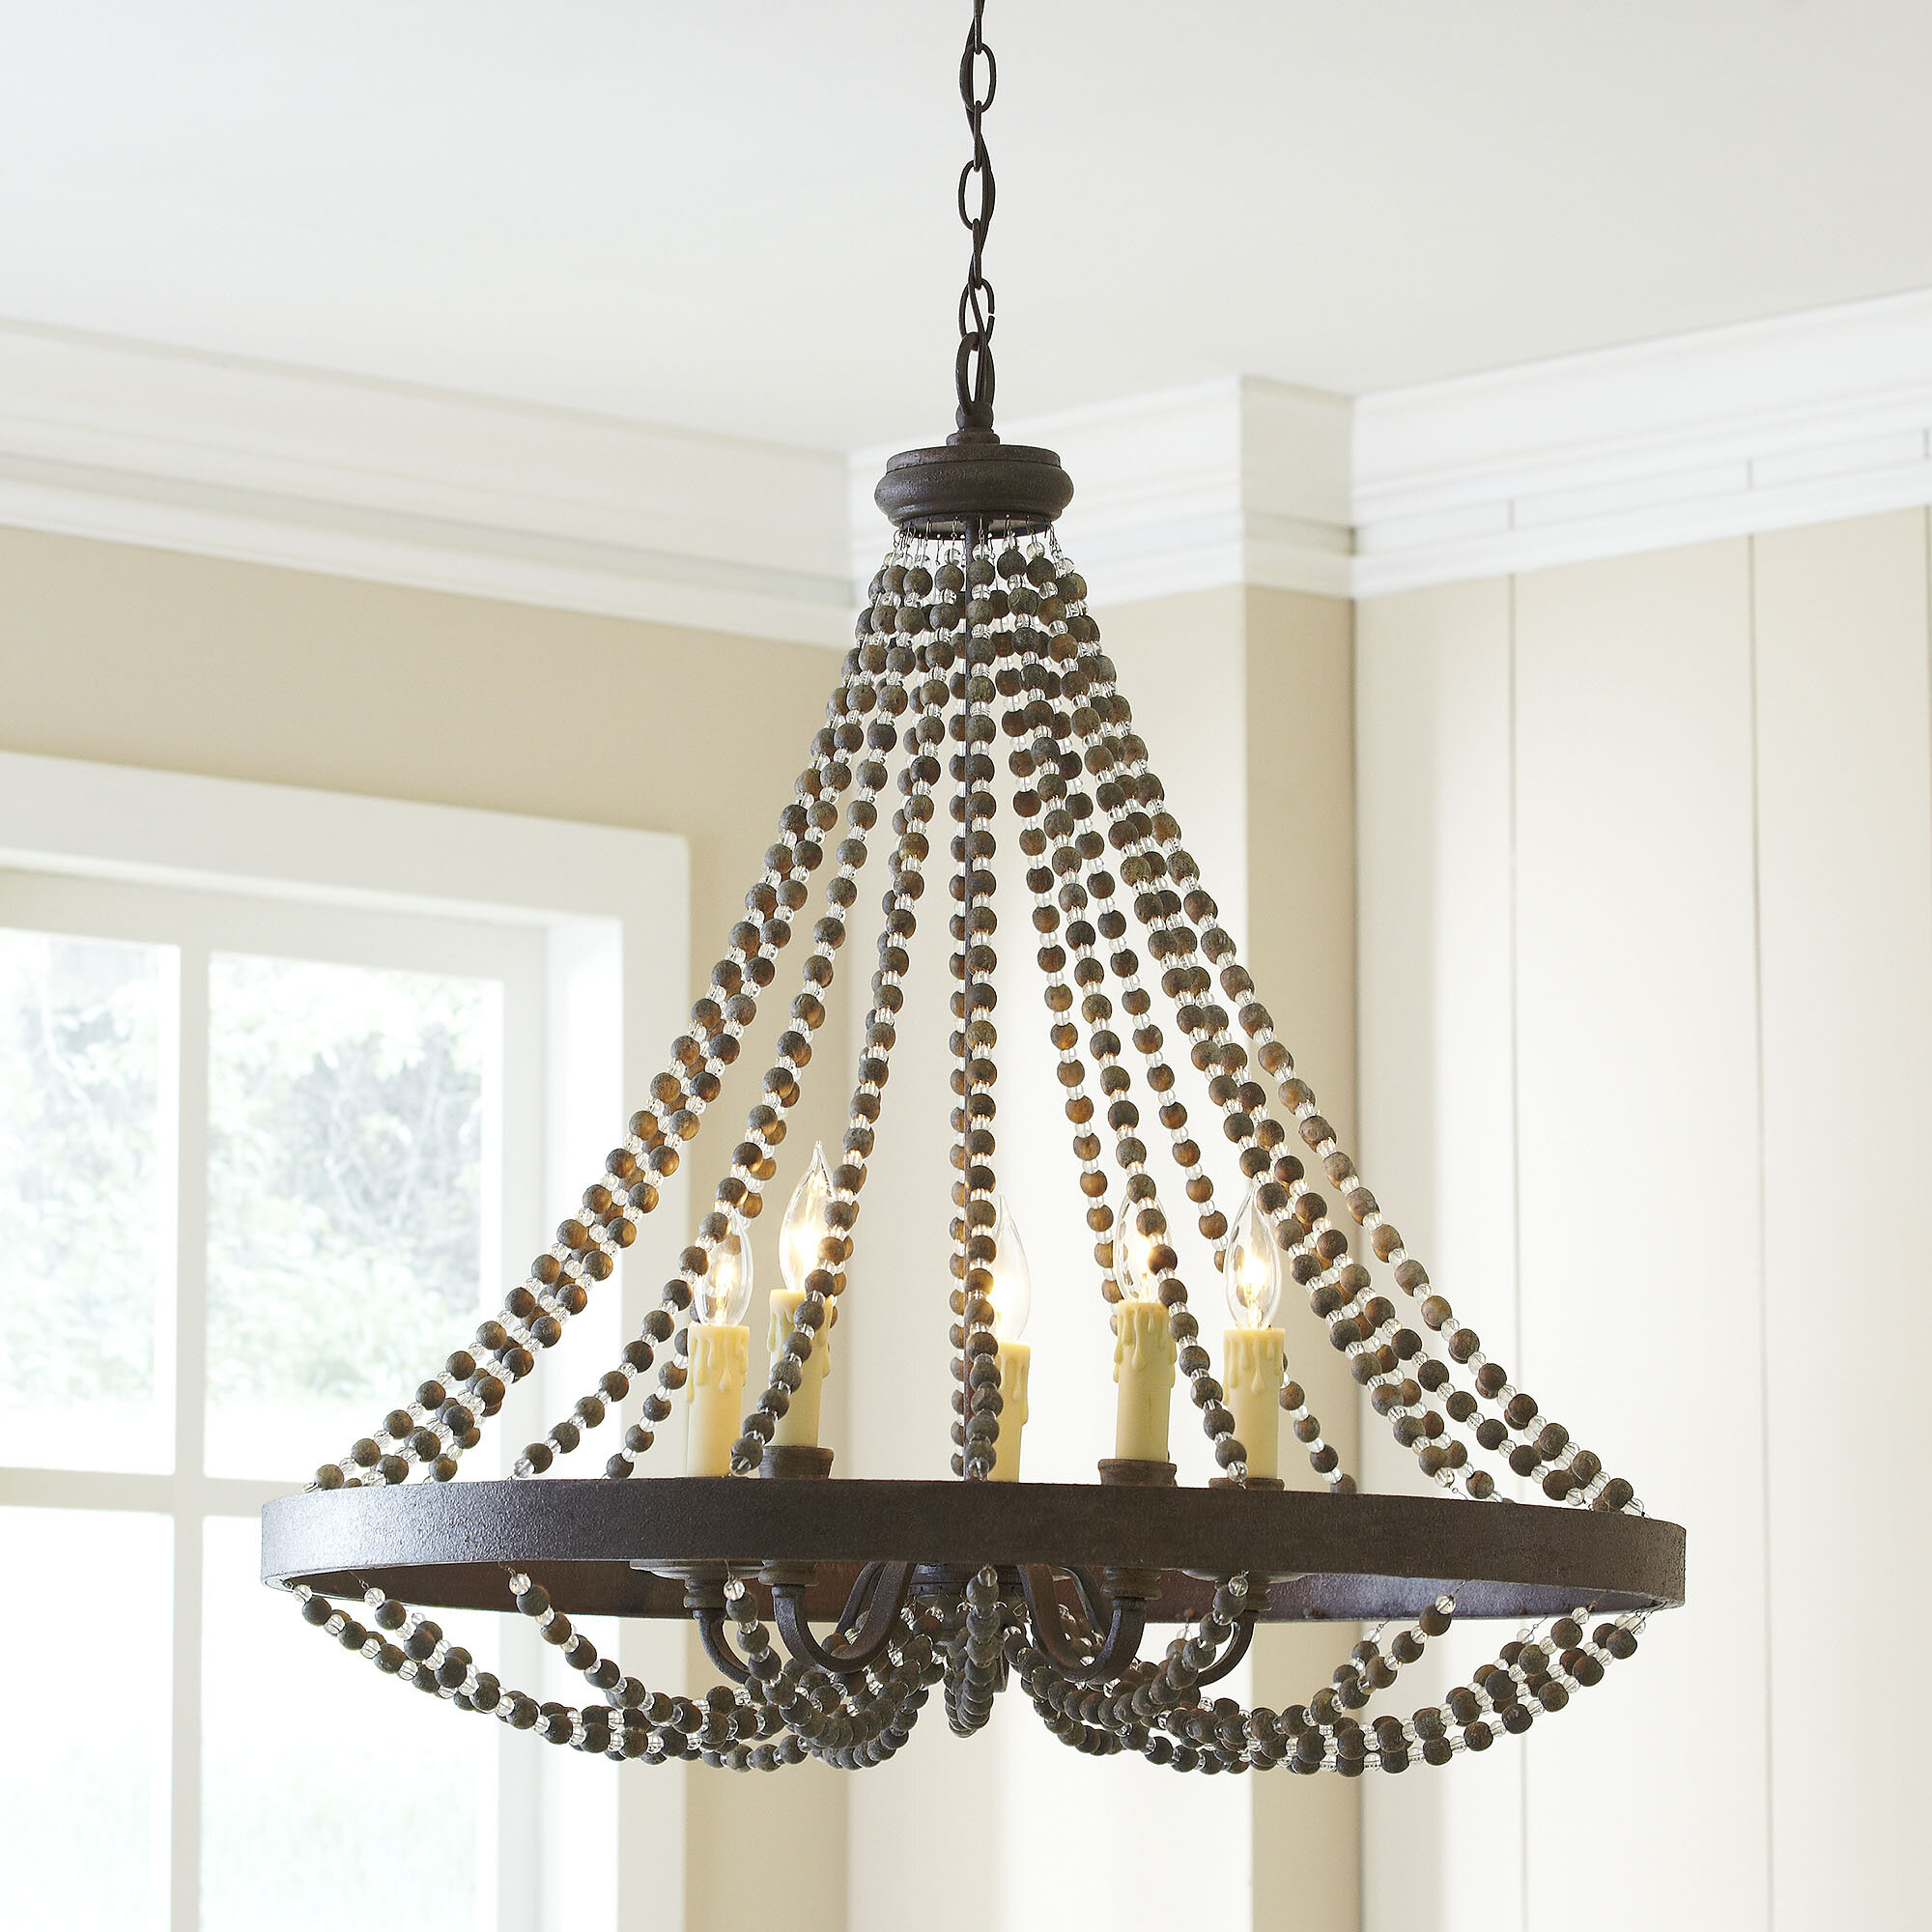 concept light products bacarat mg style beaded antoinette italian zenith inspired chandelier wood